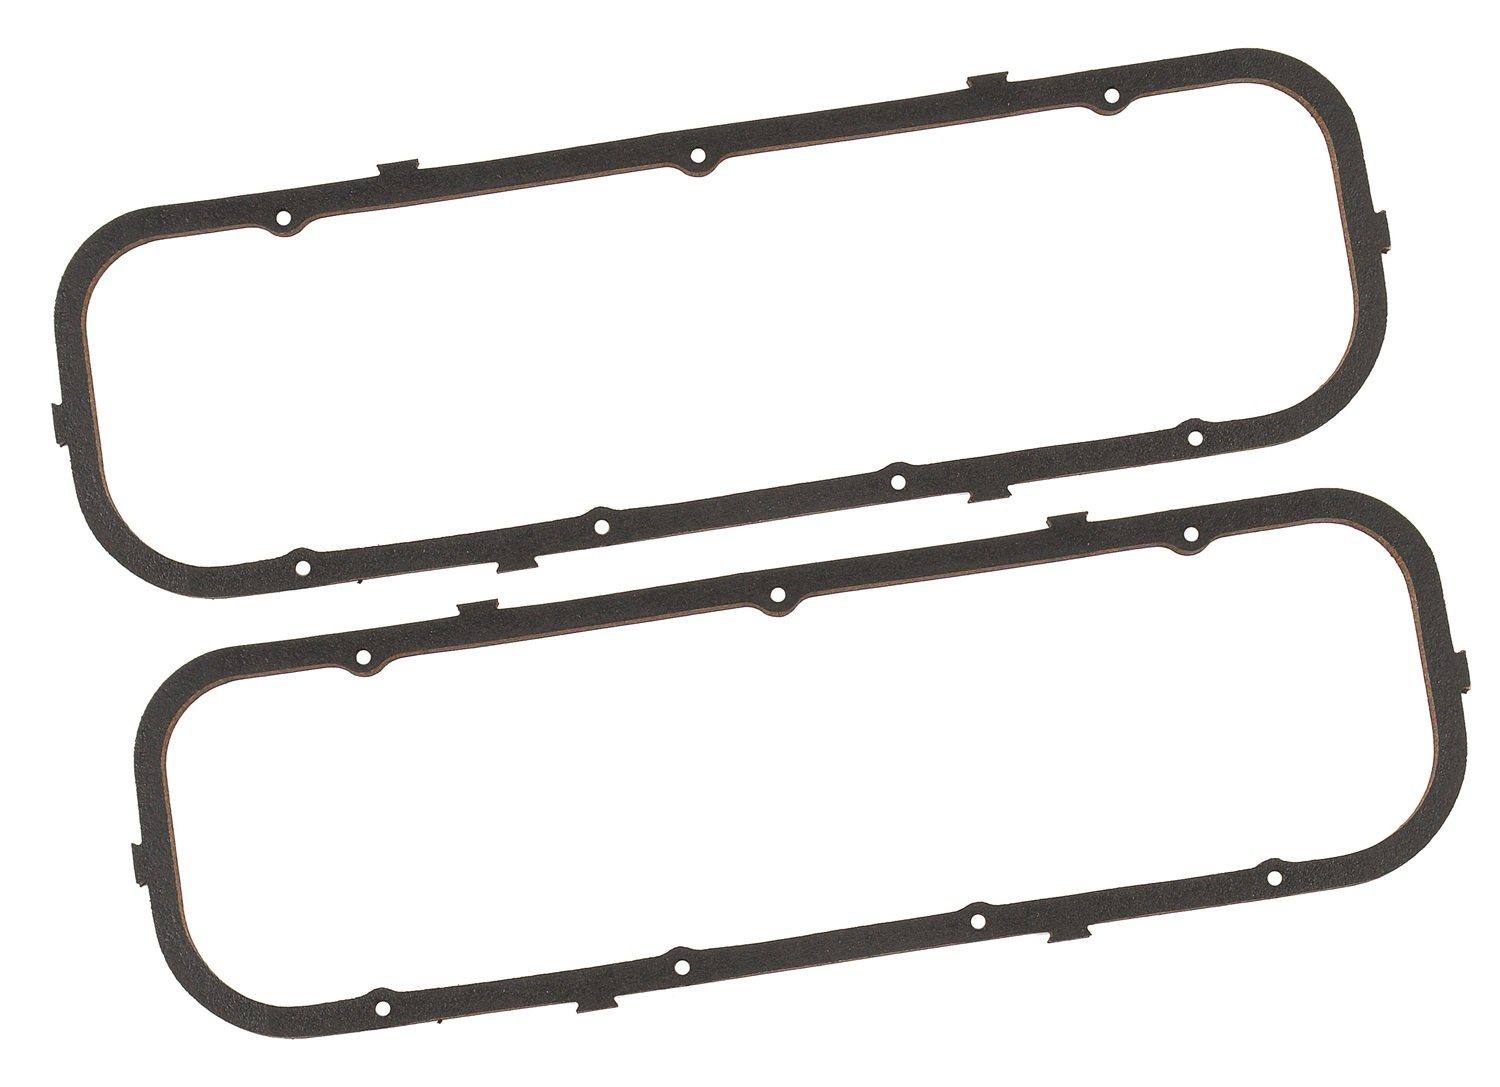 Mr. Gasket 5863 Ultra-Seal Valve Cover Gasket by Mr. Gasket